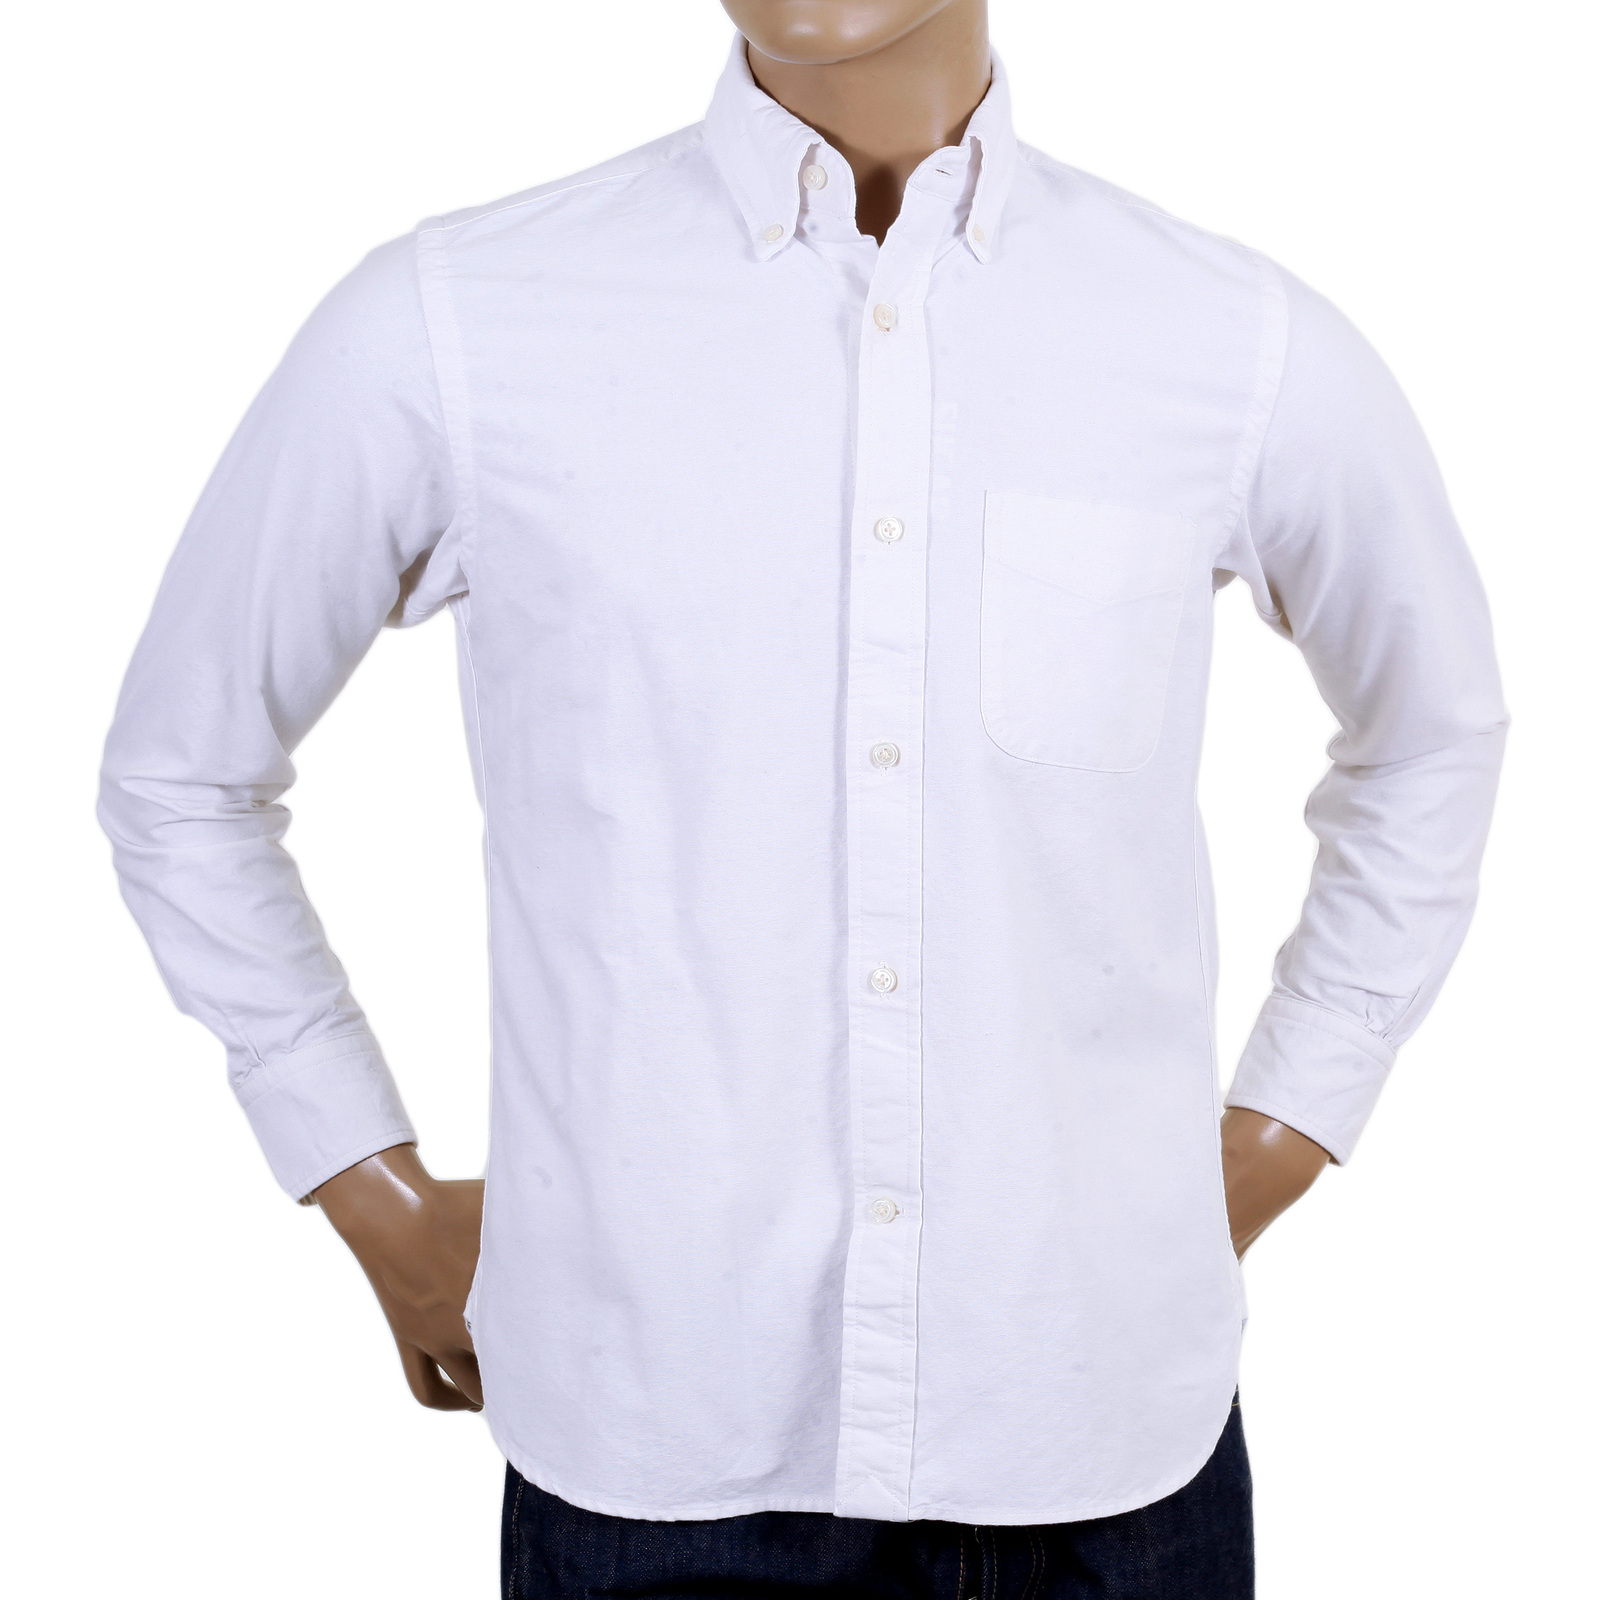 Sugar Cane White Oxford Shirt with Button Down Collar